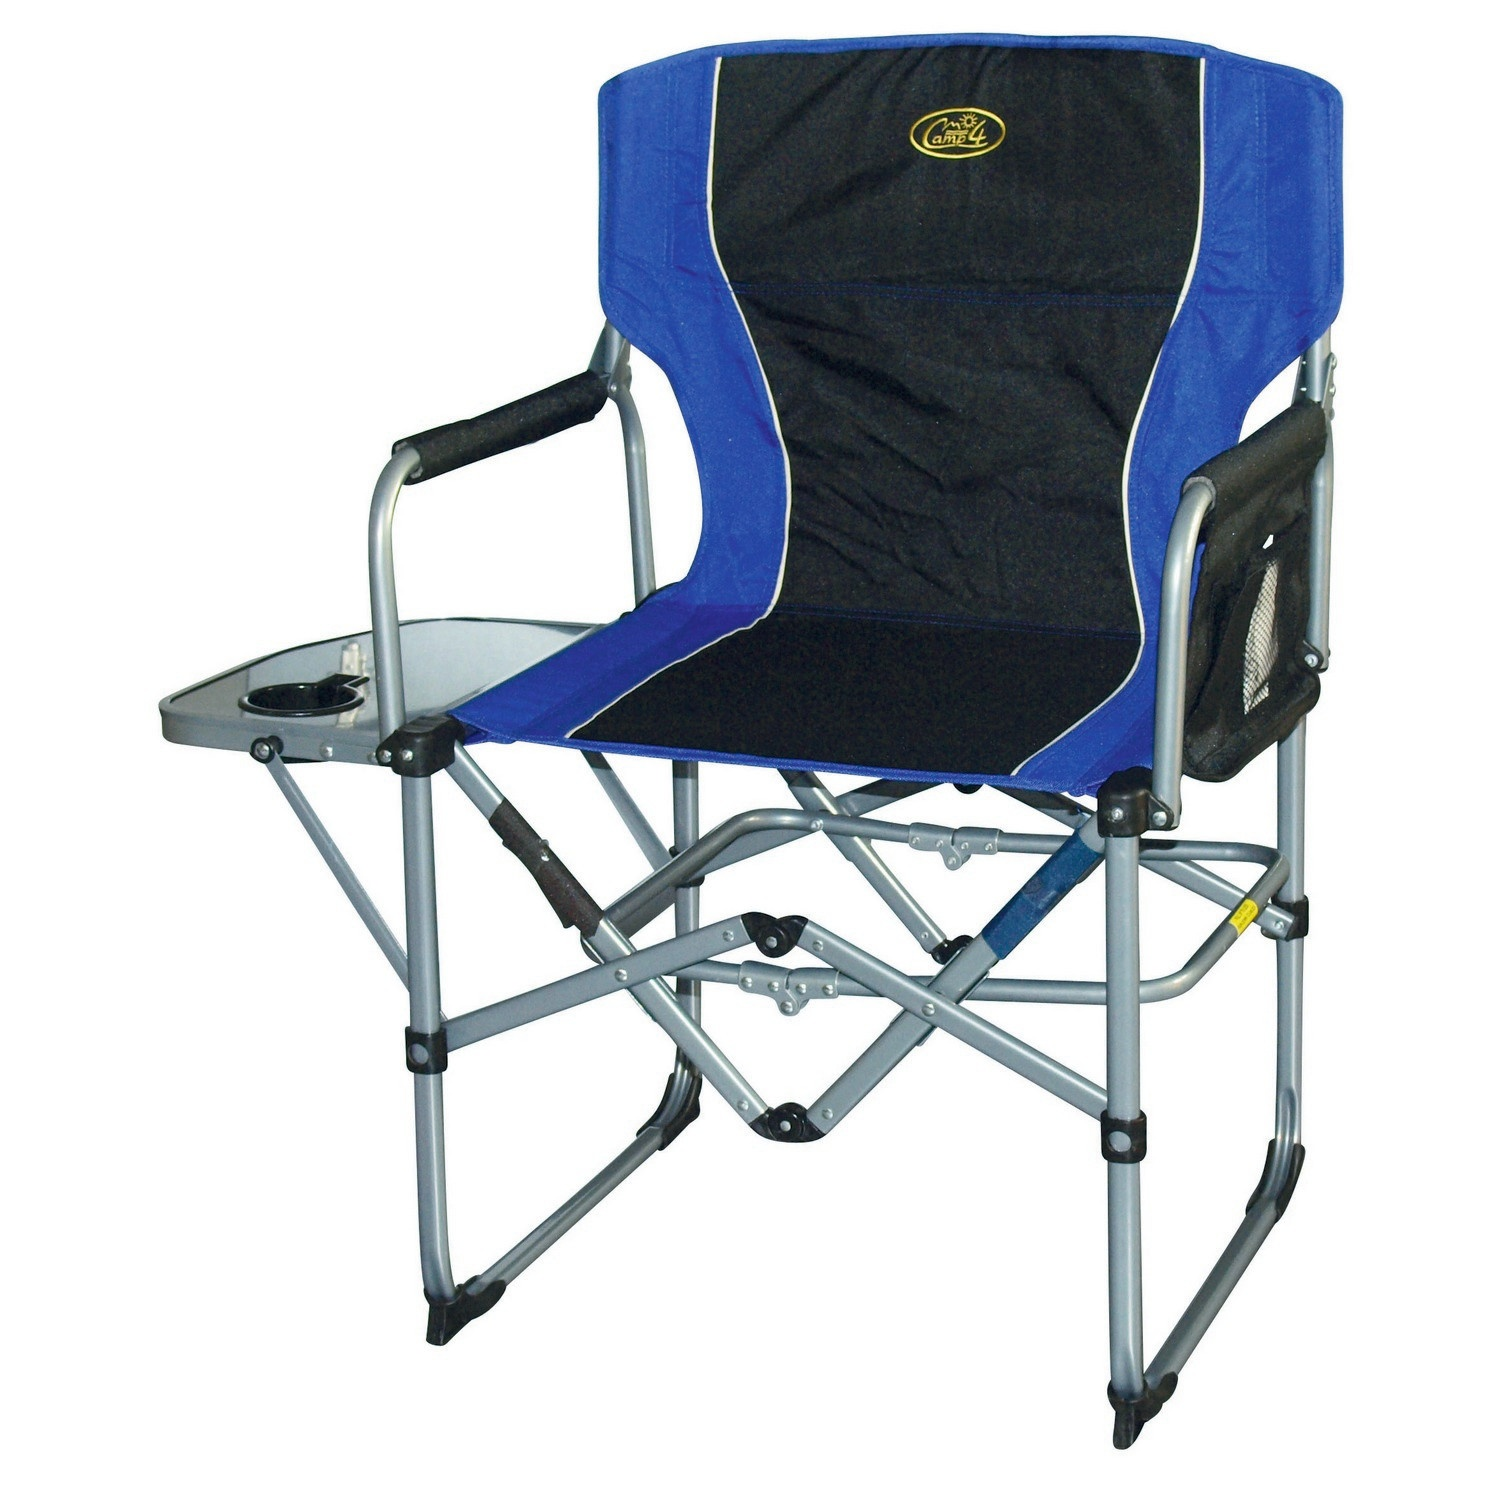 Folding Camping High Chair Camp 4 Paloma Folding Directors Camping Chair Ebay